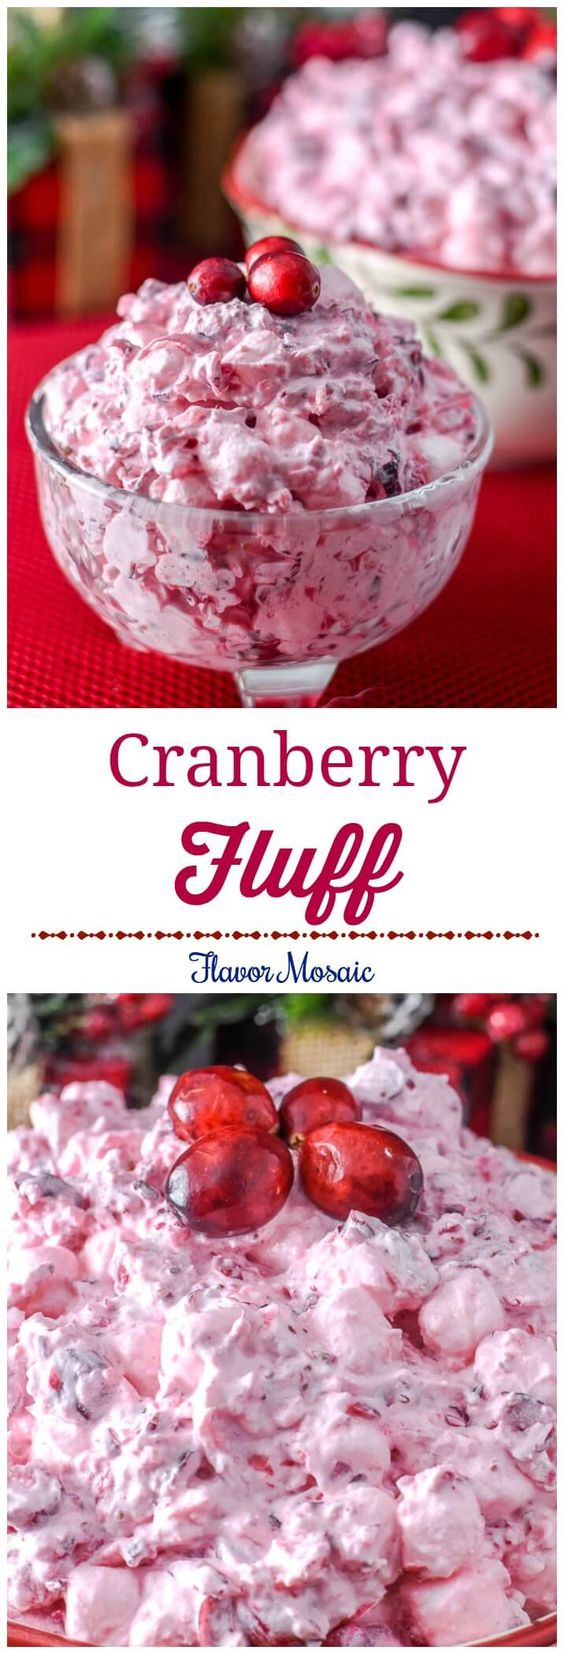 This pretty Cranberry Fluff Salad, made with fresh cranberries, makes a sweet and delicious salad, side dish, or dessert for a Thanksgiving or Christmas holiday dinner. via @flavormosaic